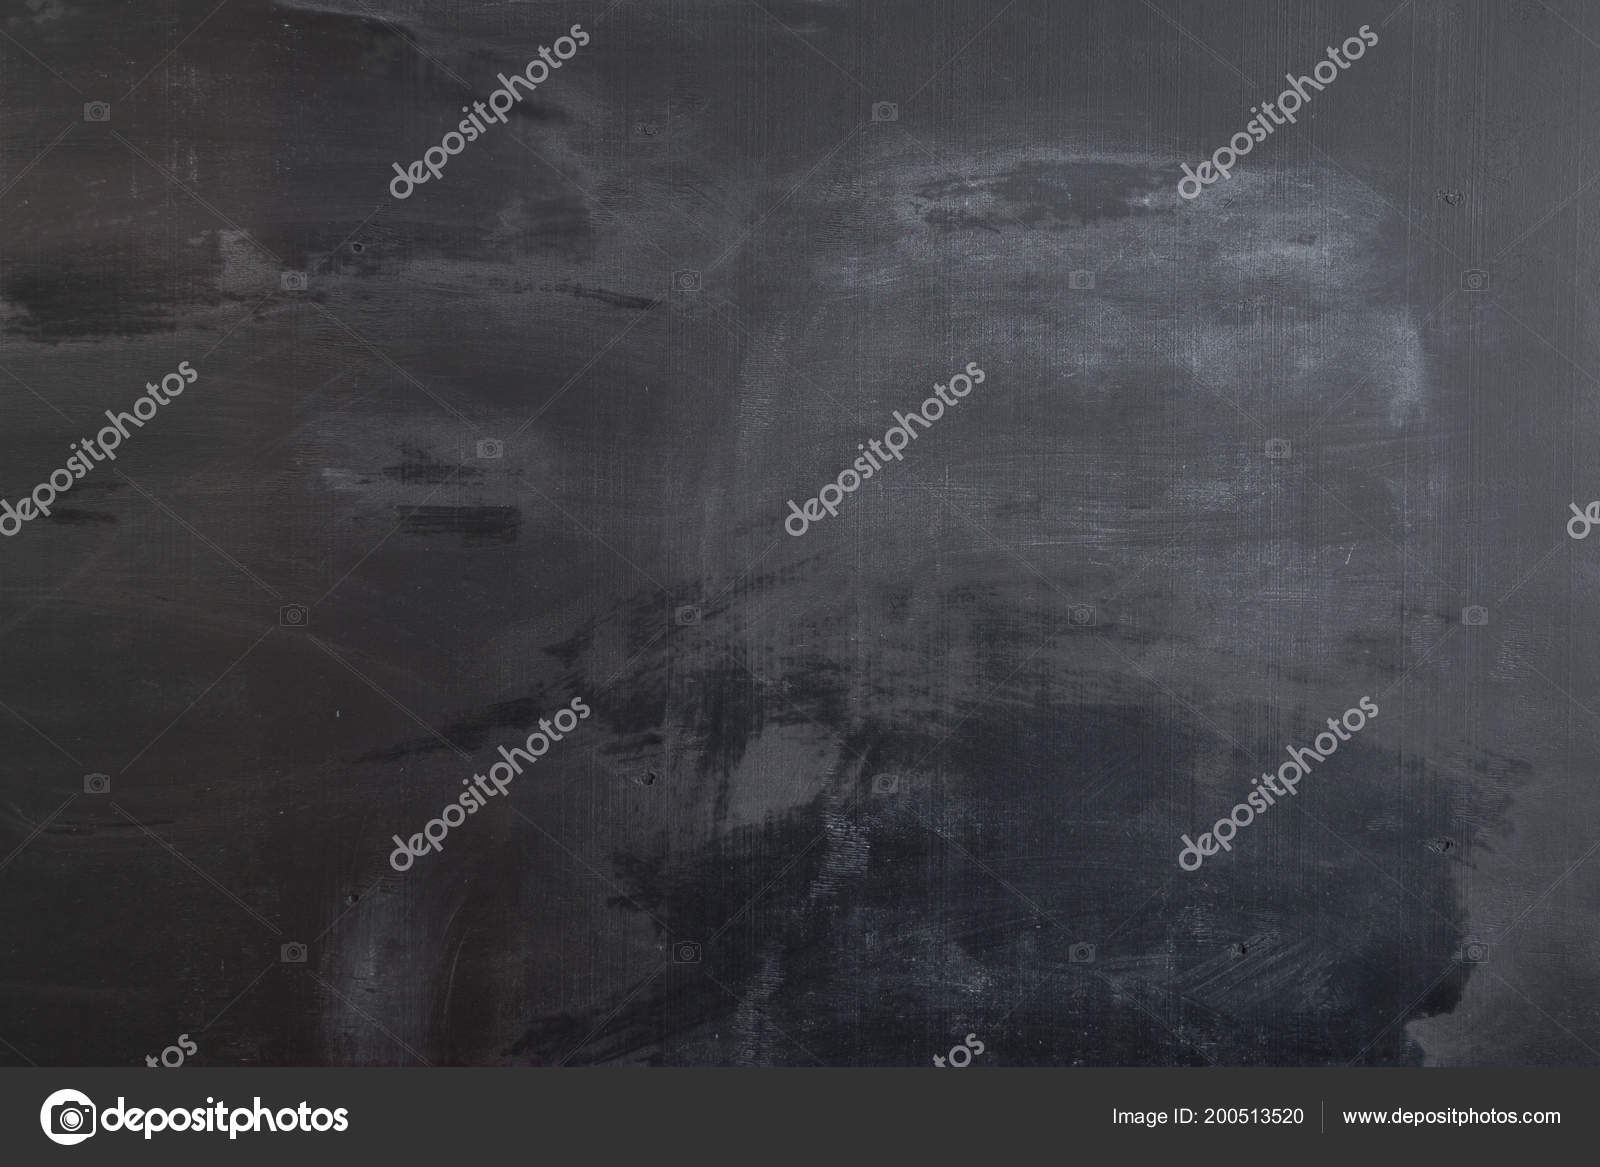 Black painted wood texture Modern Black Wooden Texture Painted Wood For Backgrounds And Wallpapers Photo By Cathyrina Depositphotos Black Wooden Texture Painted Wood For Backgrounds And Wallpapers